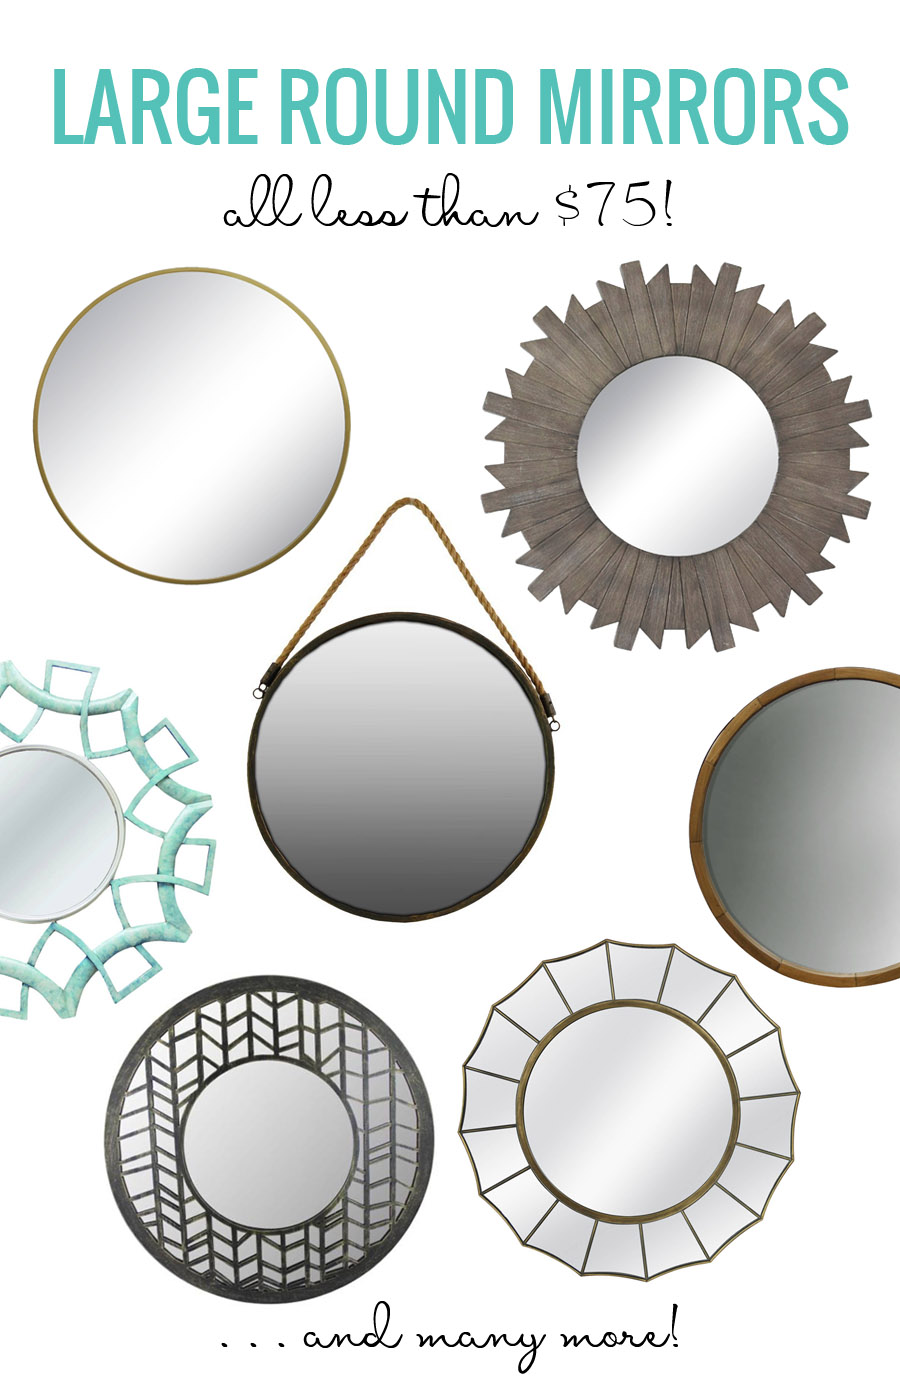 An Affordable Collection of Stylish, Large Round Mirrors